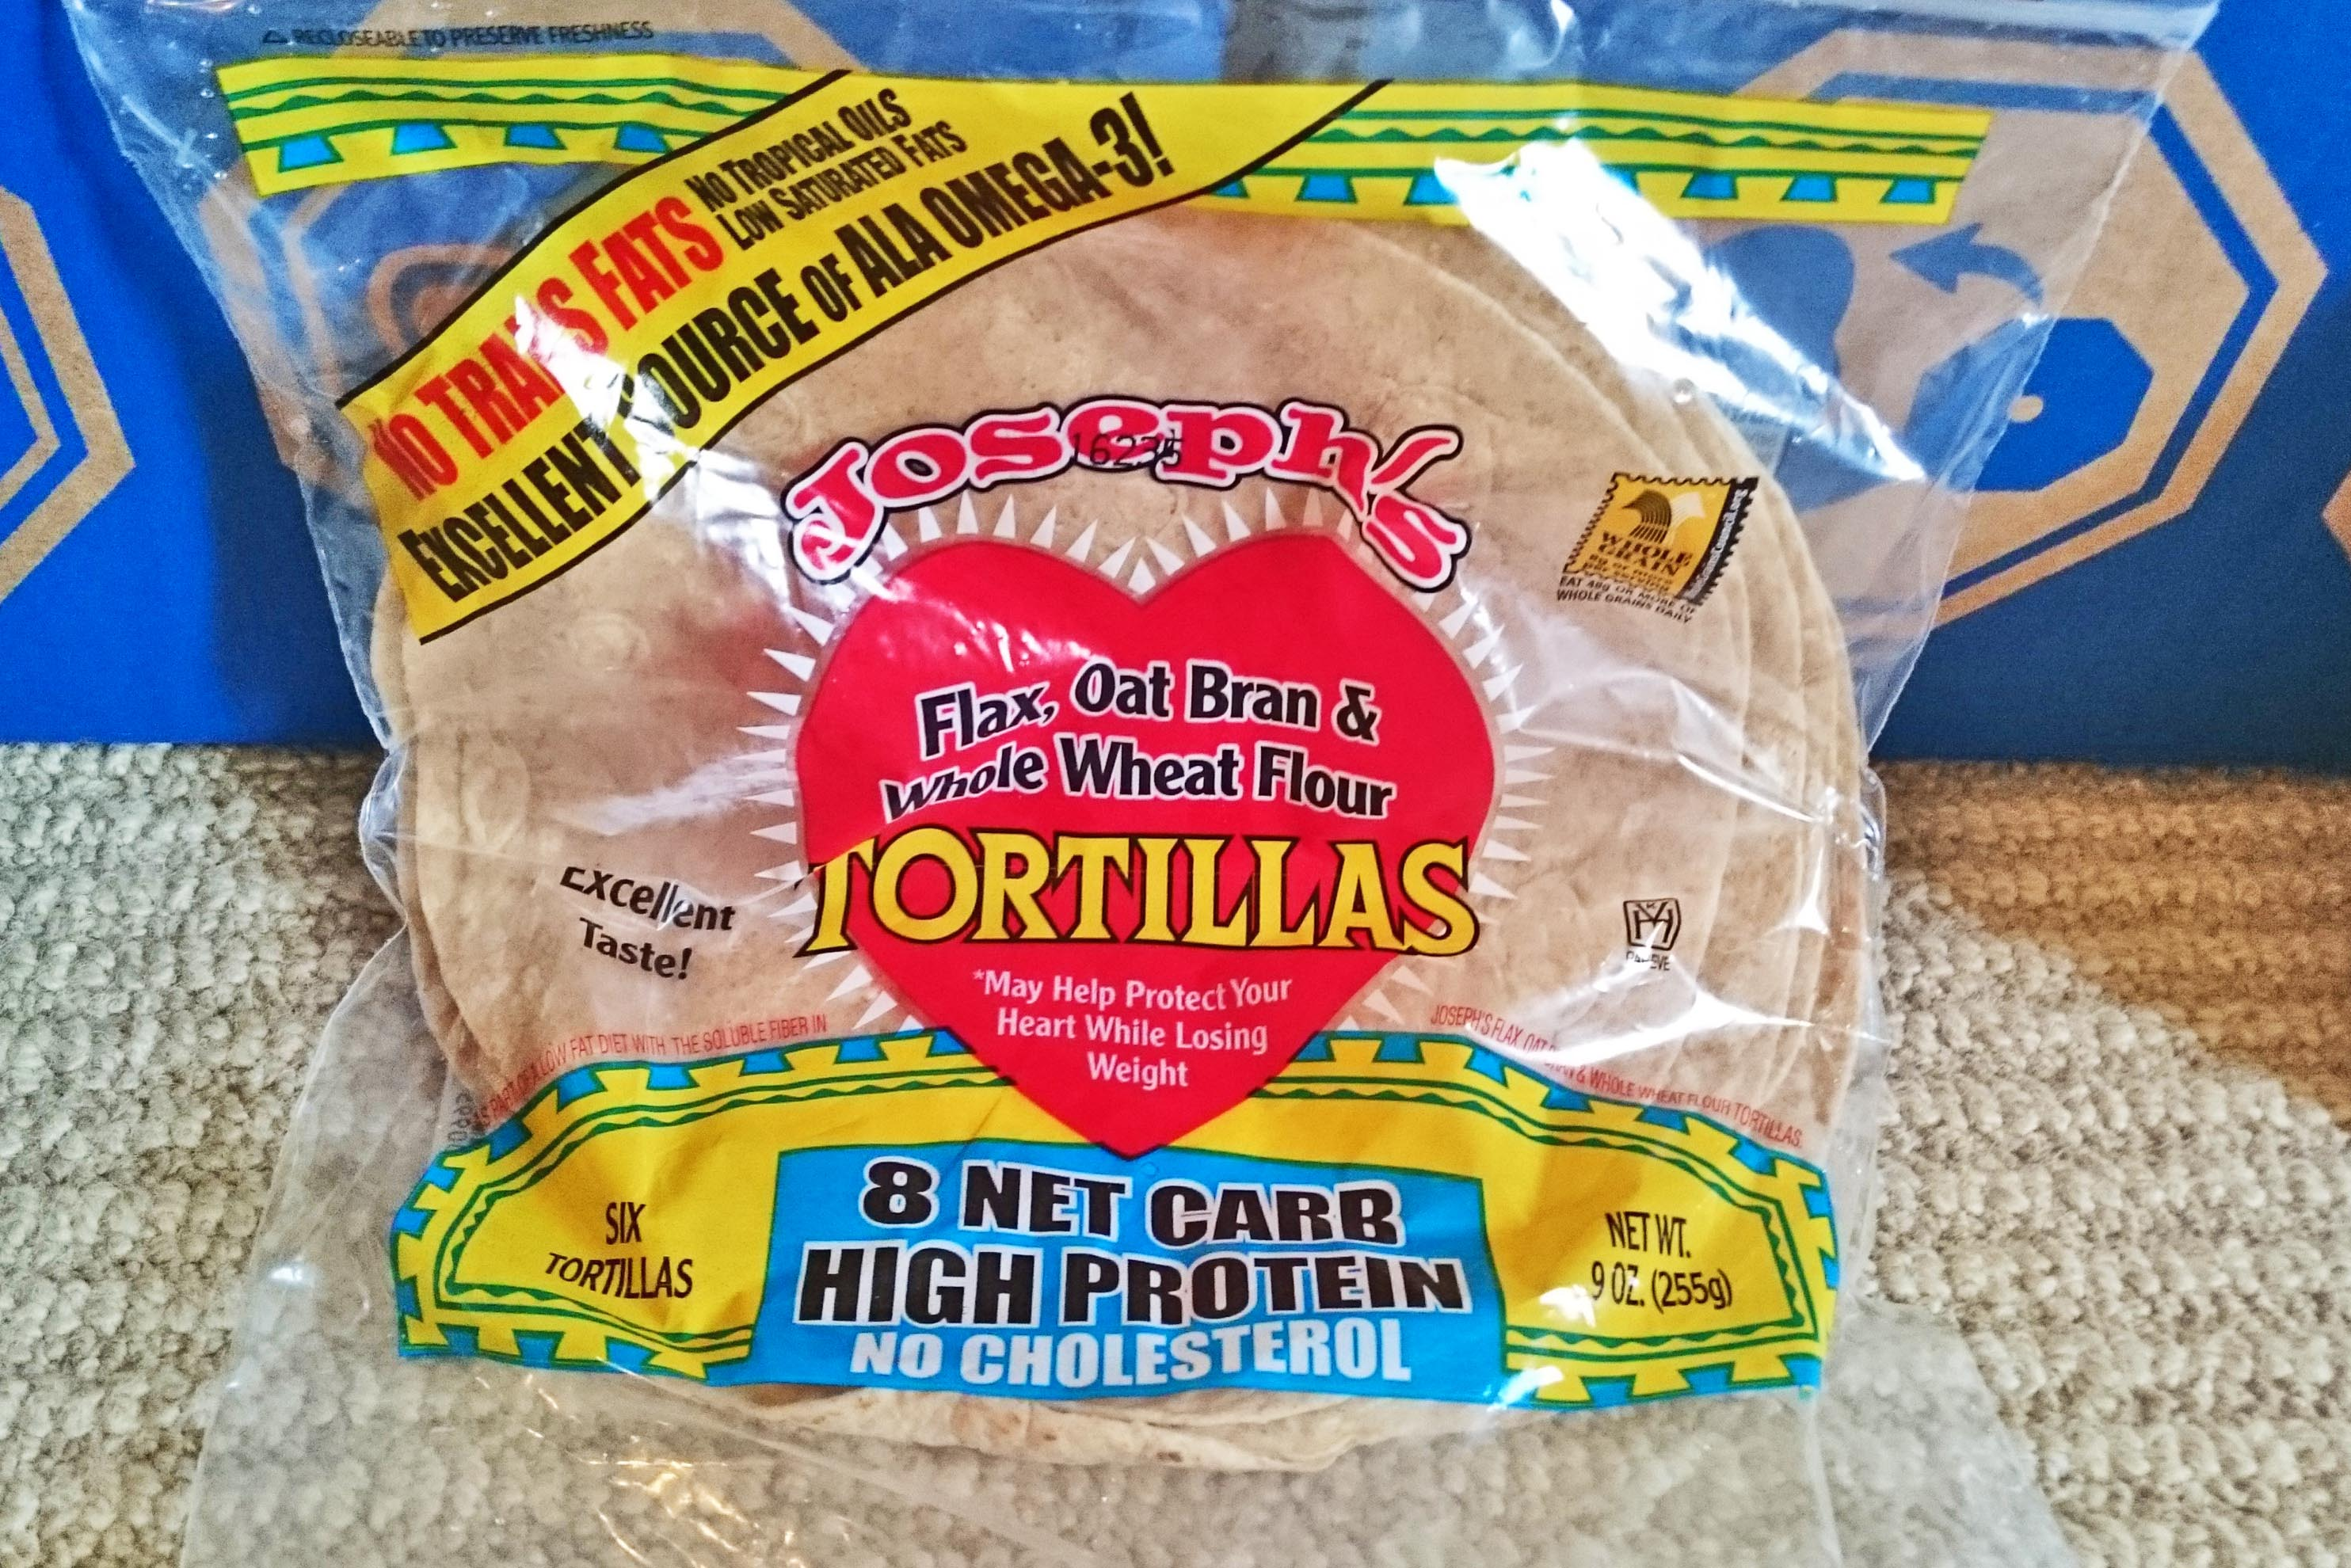 Musclefood Low Carb Tortillas